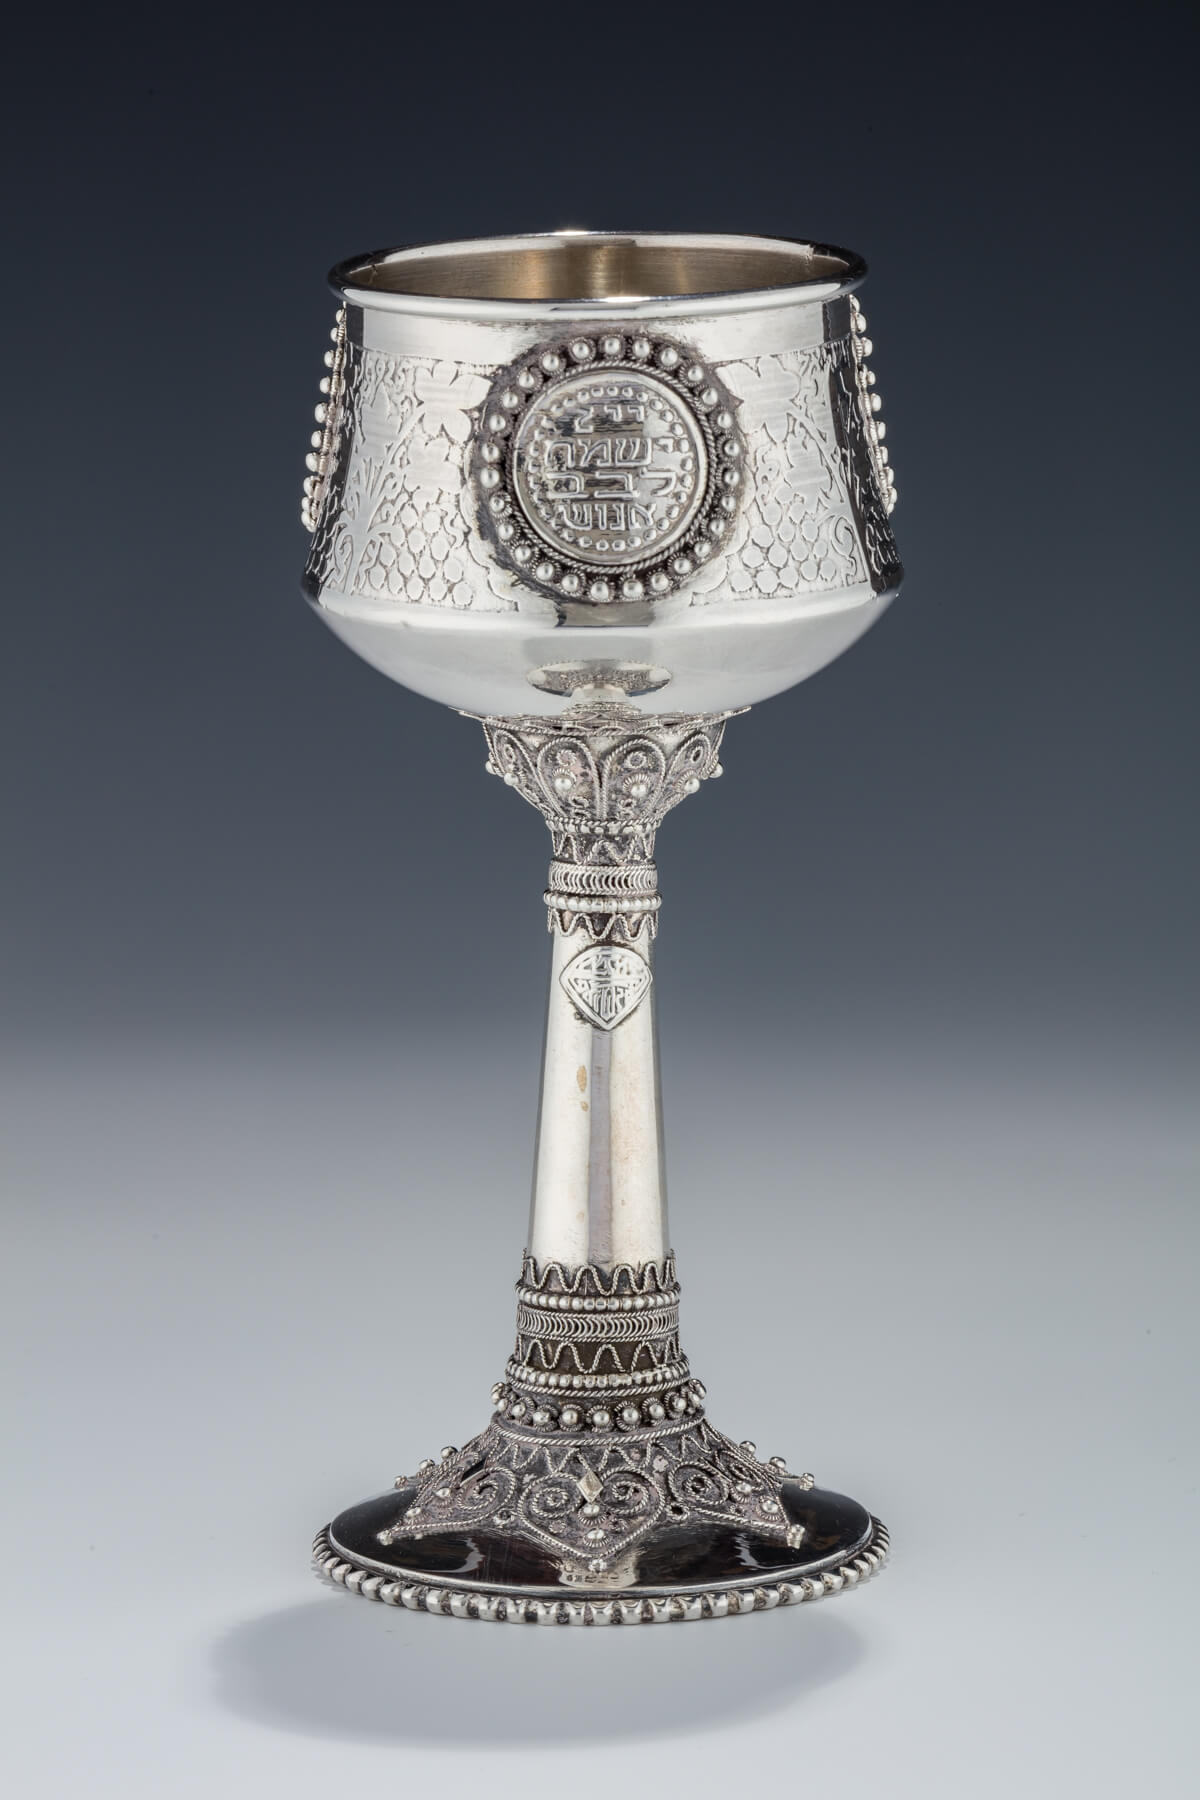 013. Large Silver Kiddush Cup by Bezalel